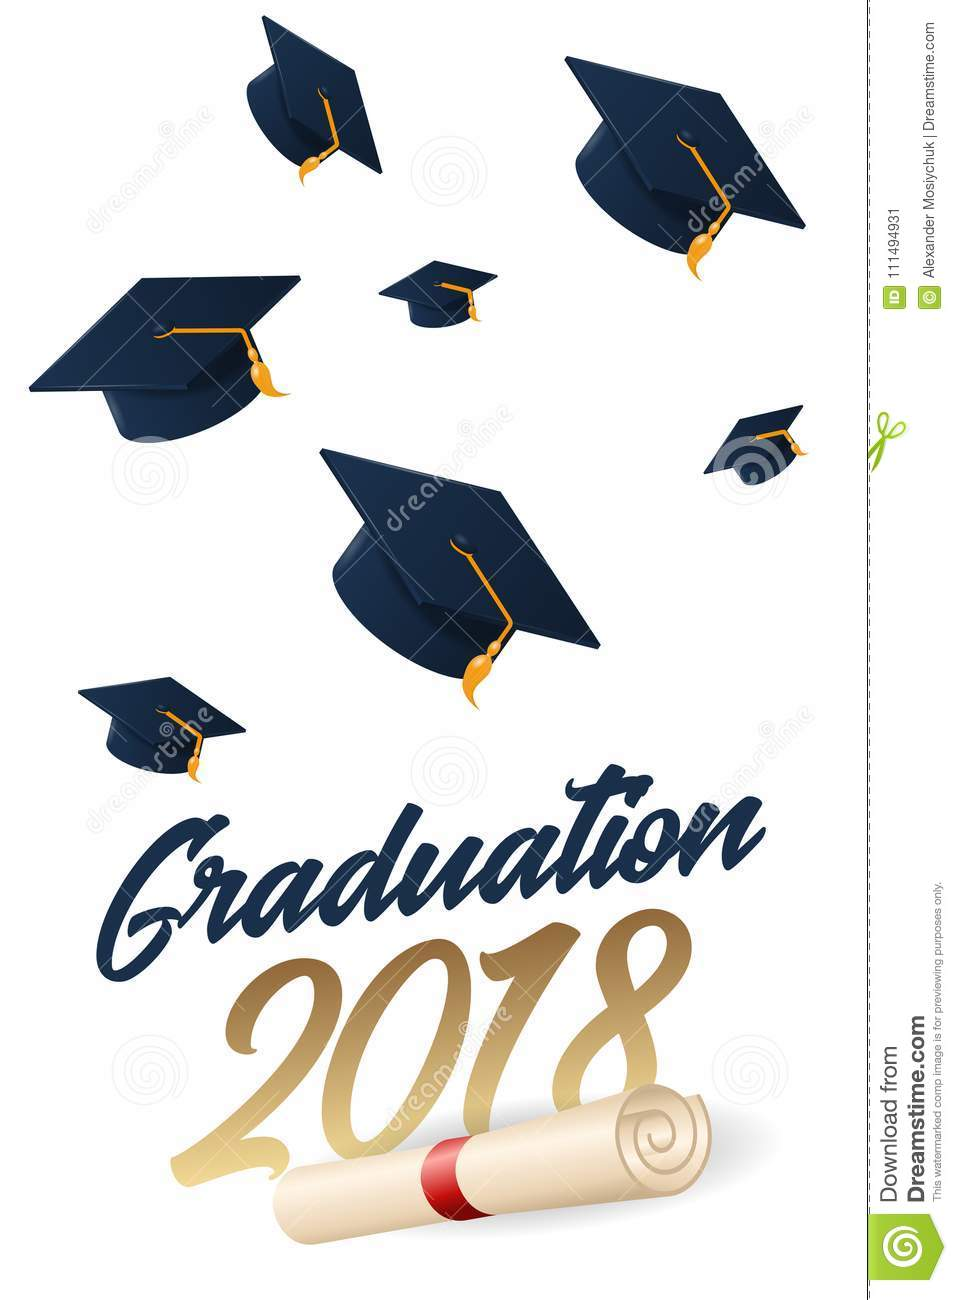 graduation 2018 poster with hat or mortar board stock vector